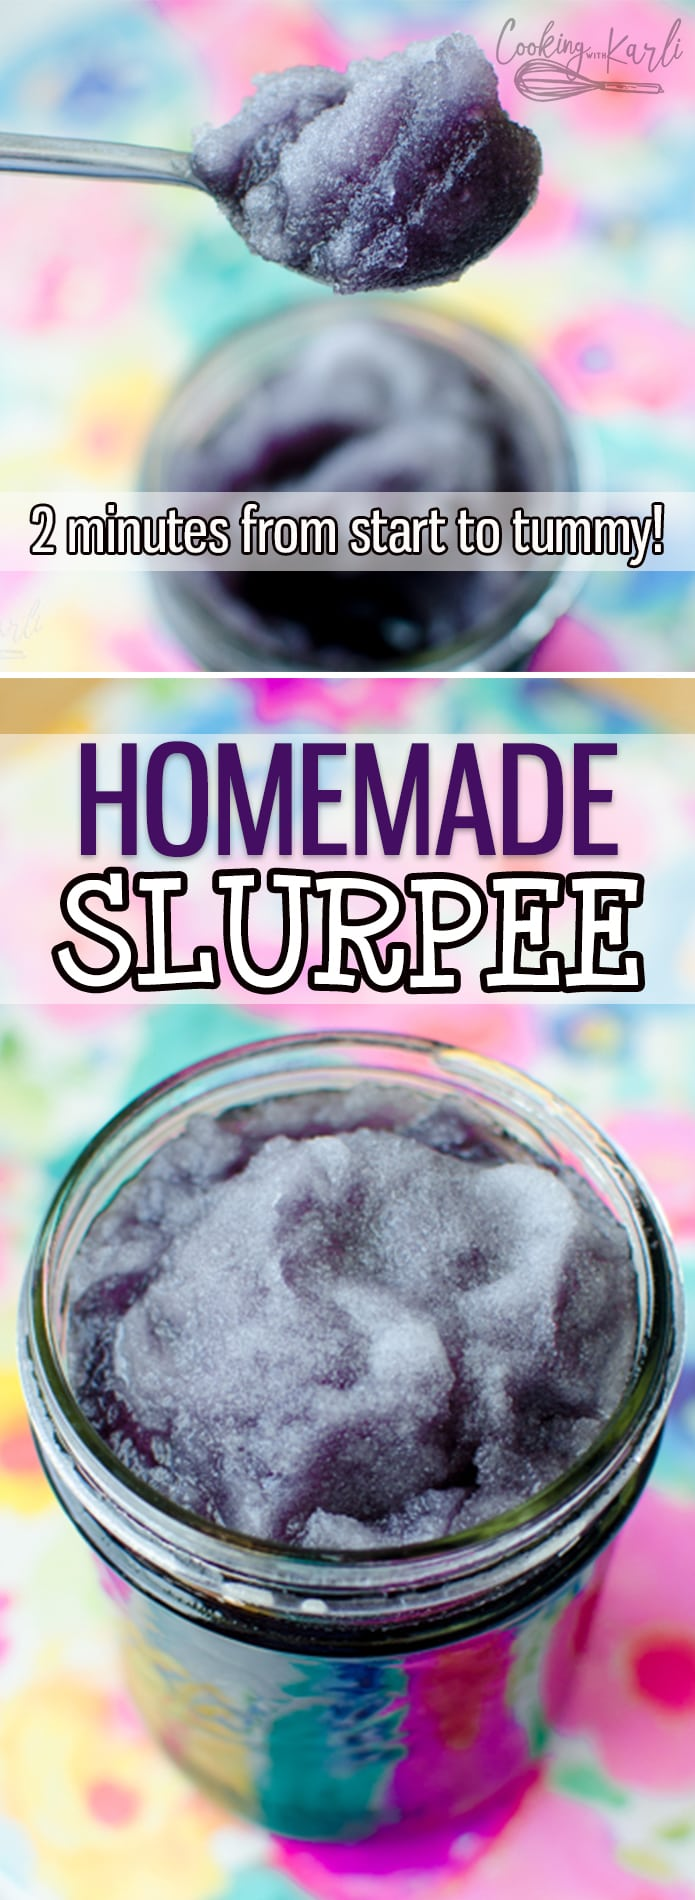 Homemade Slurpees will be the fastest, easiest and most refreshing treat this summer! All it takes is 4 ingredients and a minute or two. Unlimited flavors and endless possibilities! |Cooking with Karli| #slurpee #slushy #summer #homemade #diy